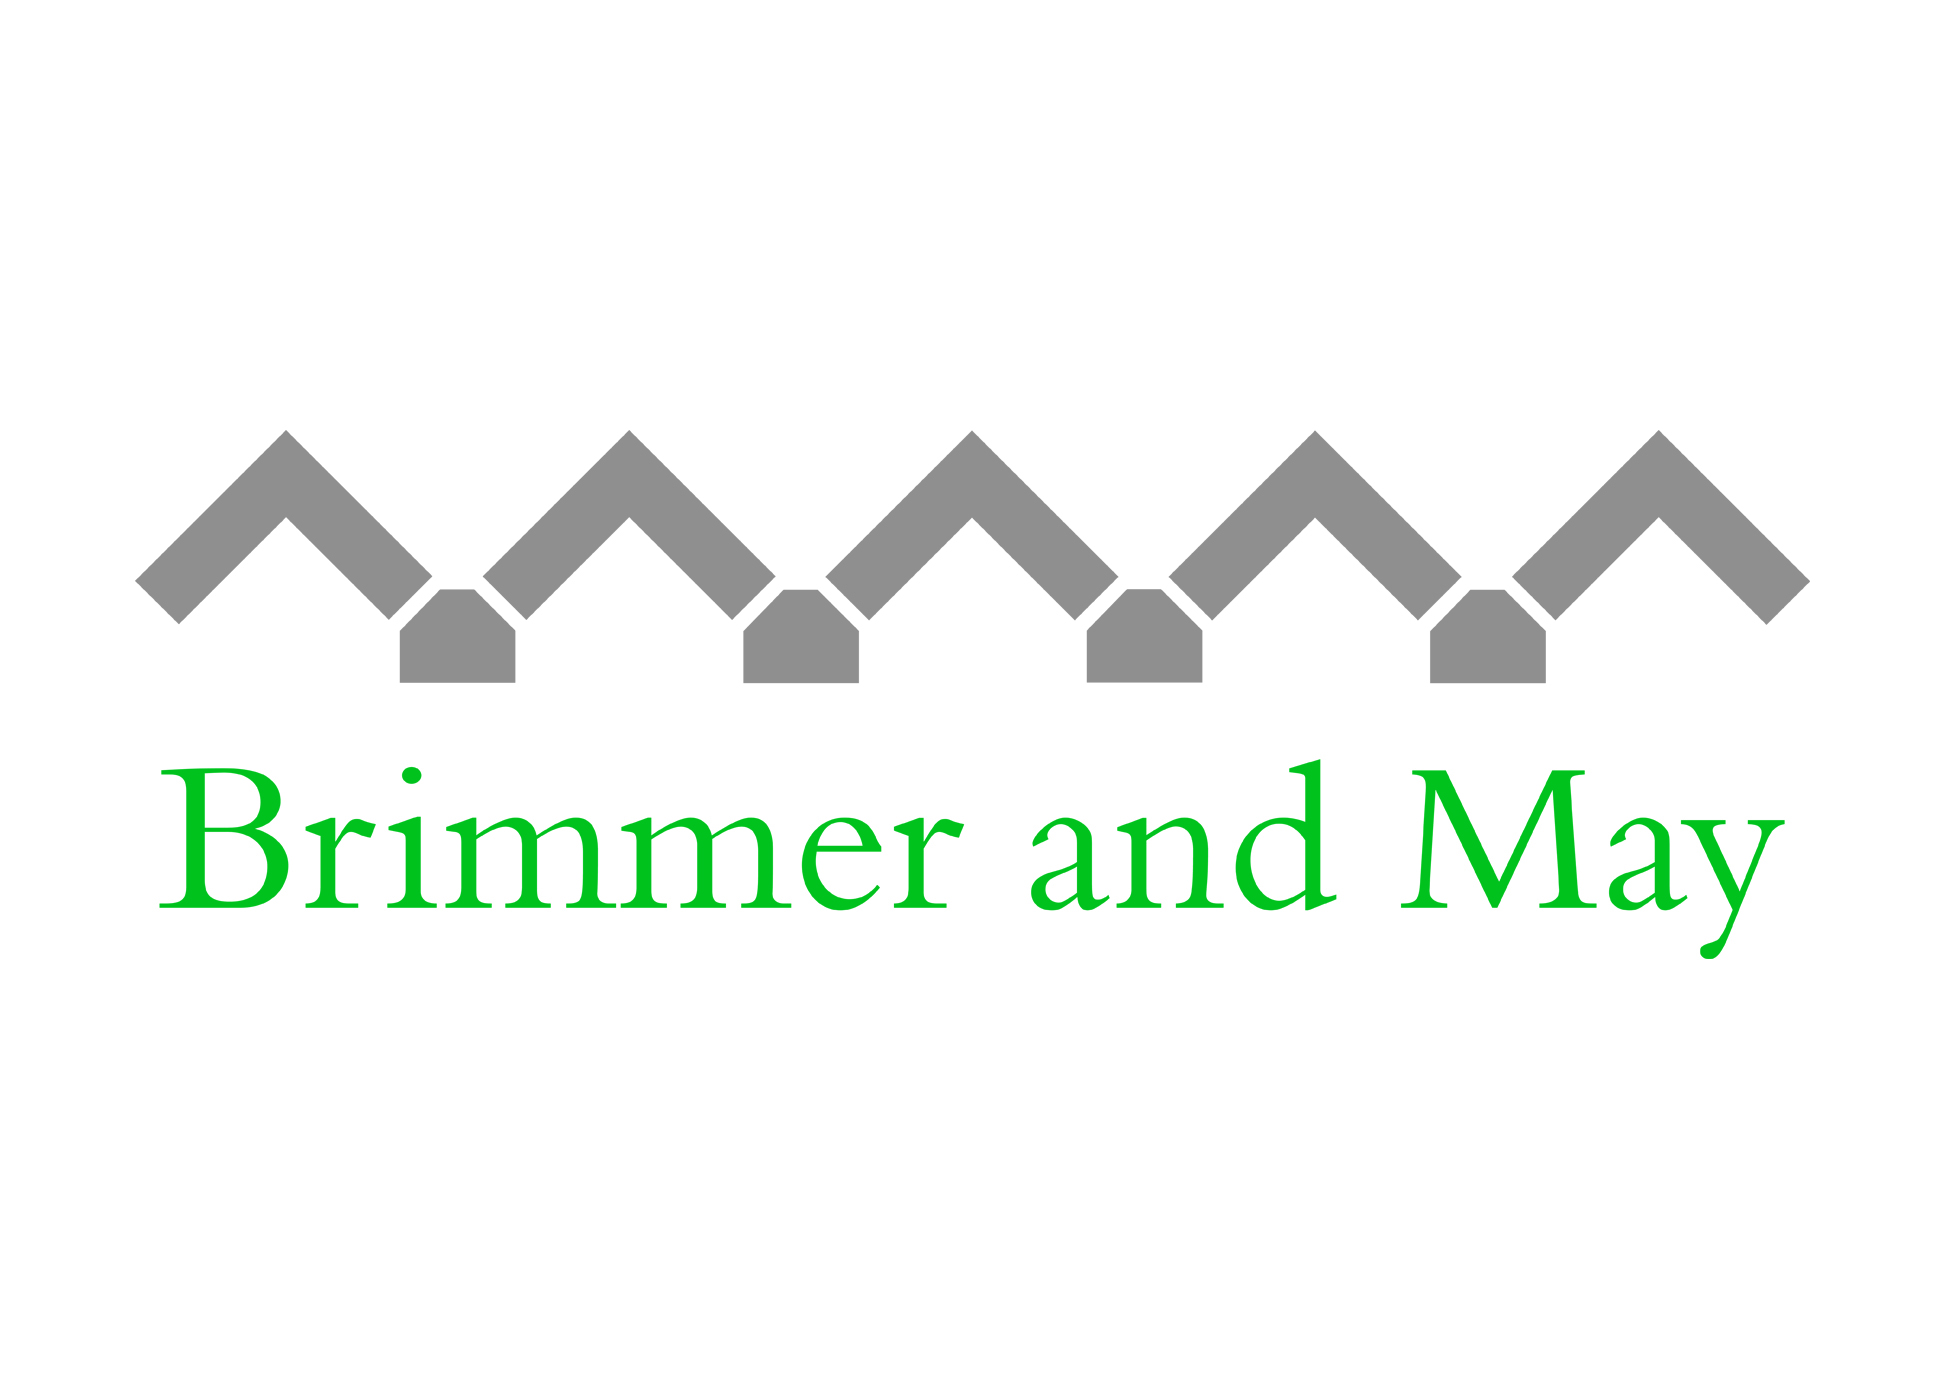 New visual brand for Brimmer and May School in Chestnut Hill, Massachusetts. This logo uses a salient architectural element from the Chase Building on the Brimmer and May campus.